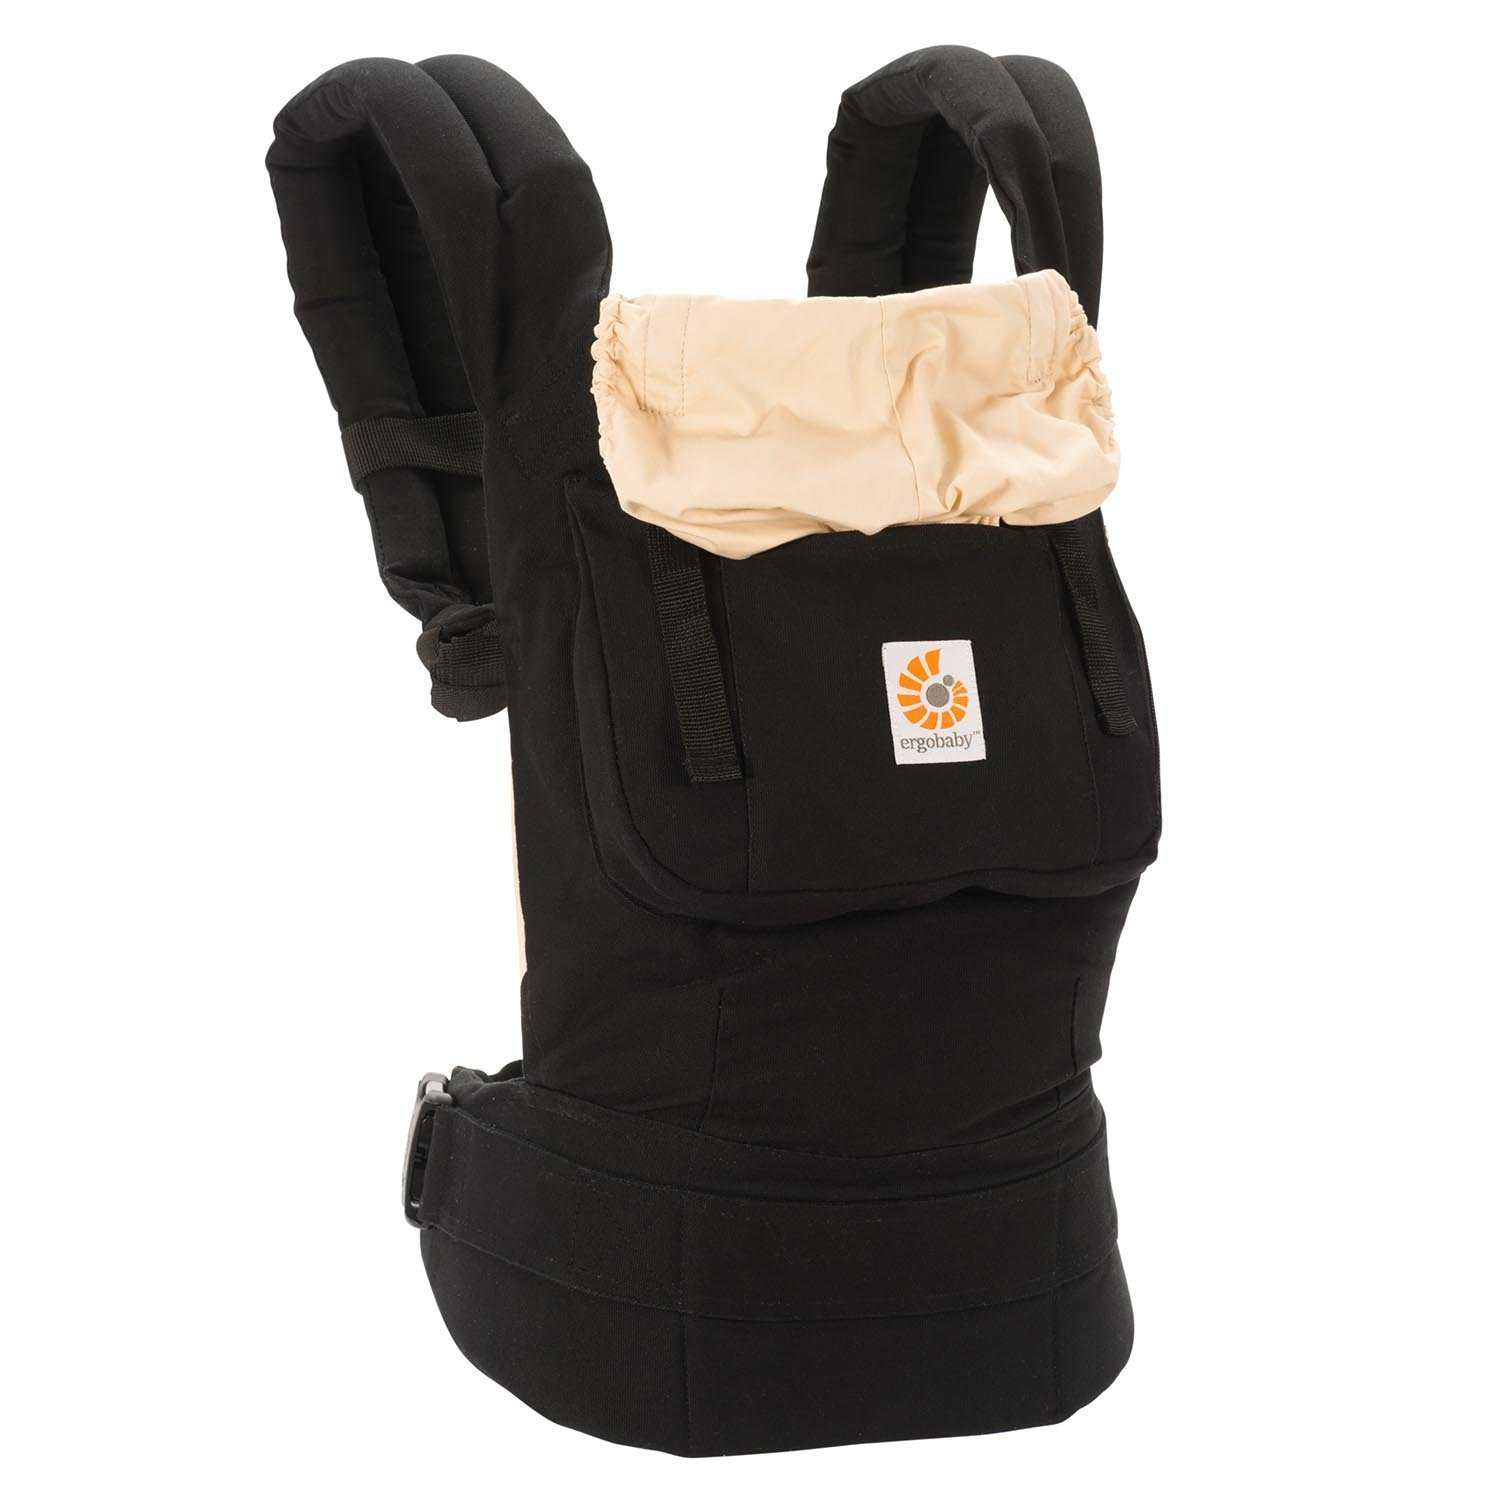 Ergo-backpack for newborns: review, specifications, description, instruction, types and reviews